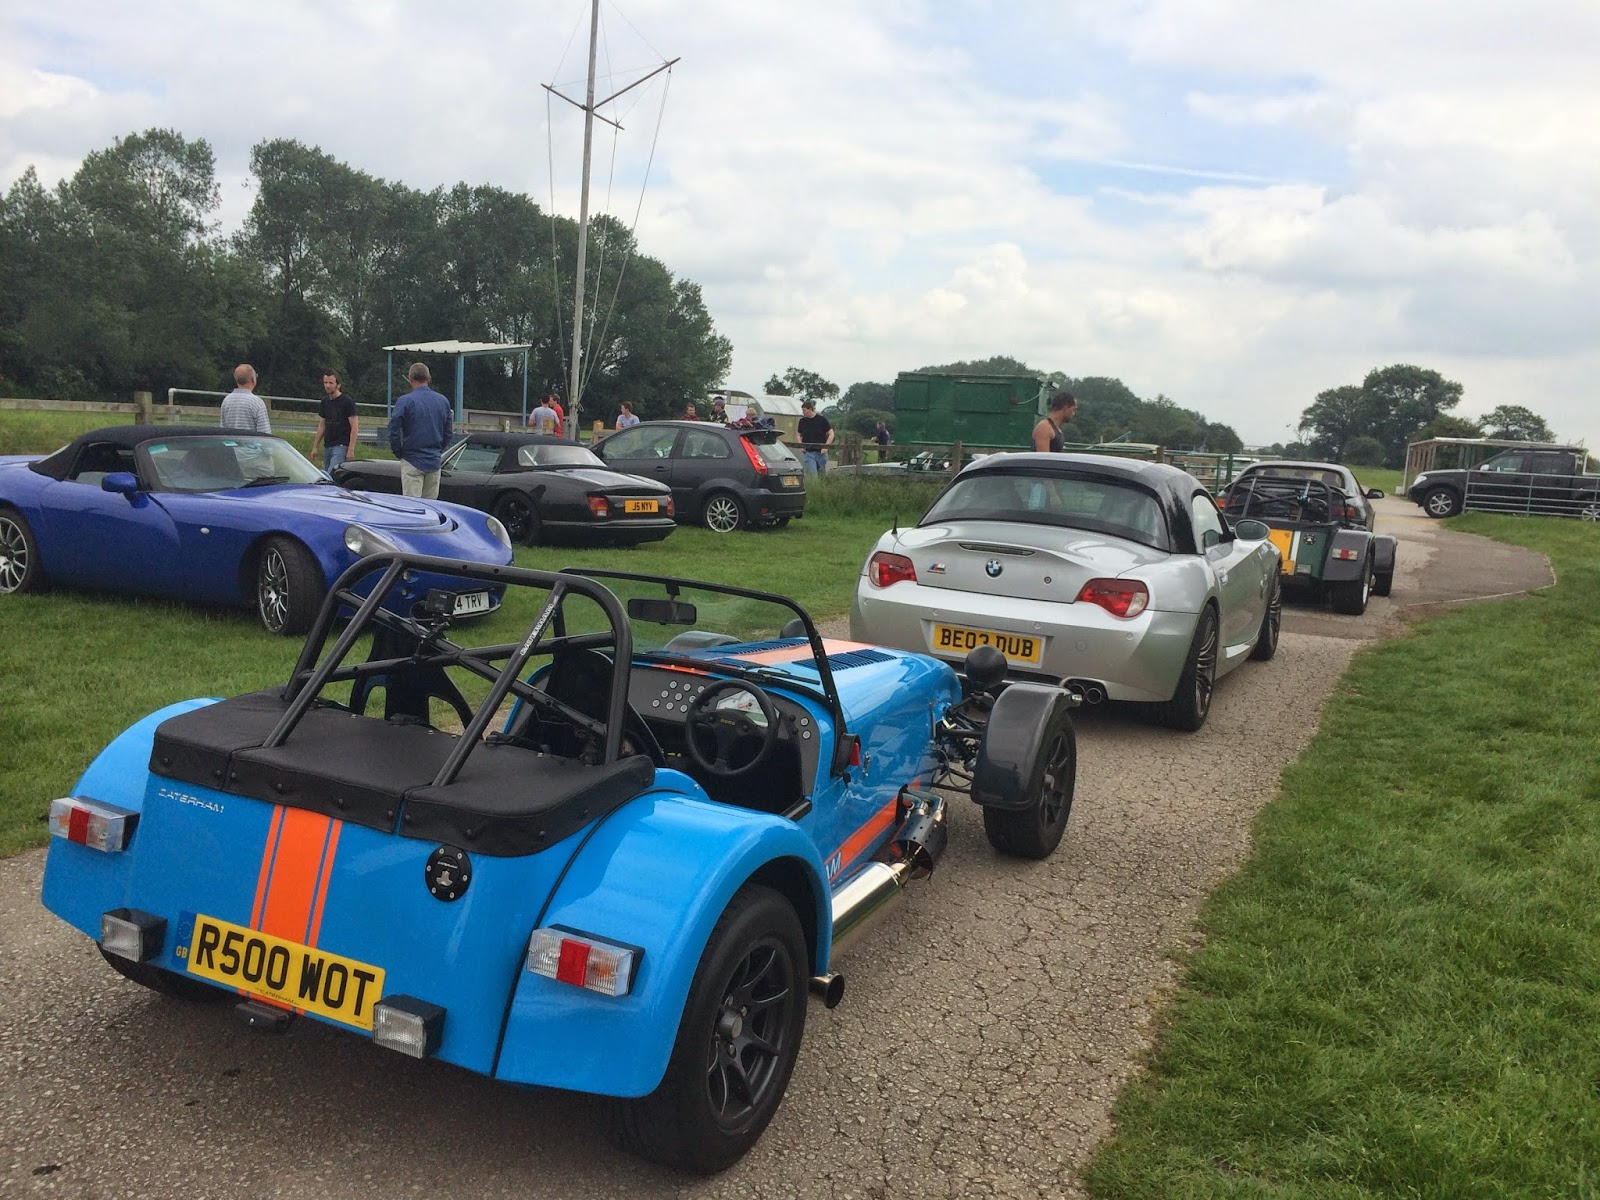 In the queue for a run - Nigel Pugh's R500 in front of supercharged Z4M